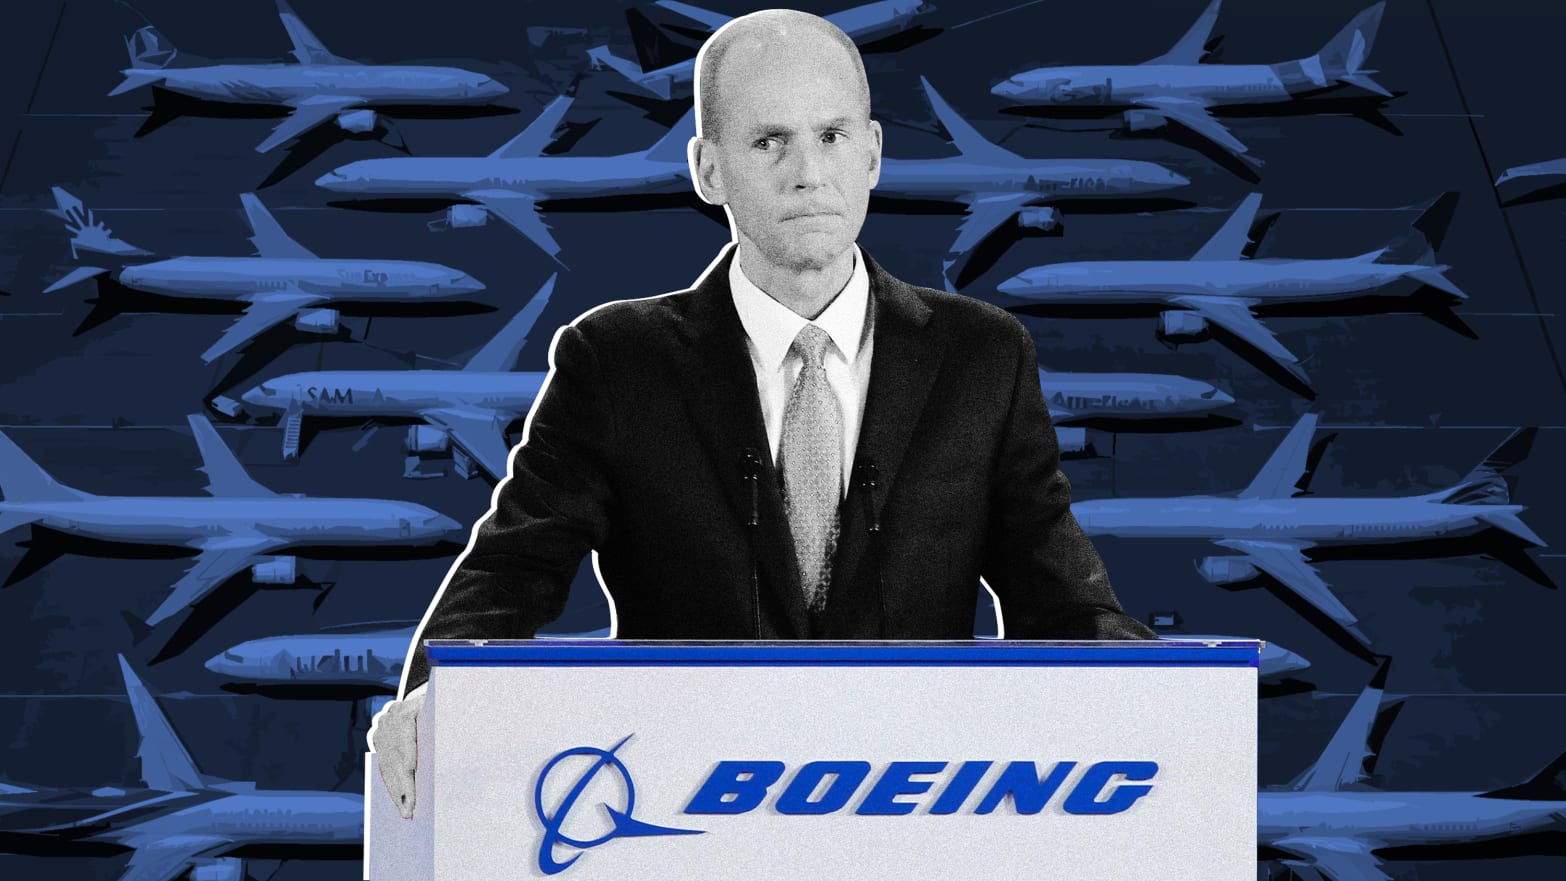 Why the Hell Does Boeing CEO Dennis Muilenburg Still Have a Job After 737 MAX Scandal?